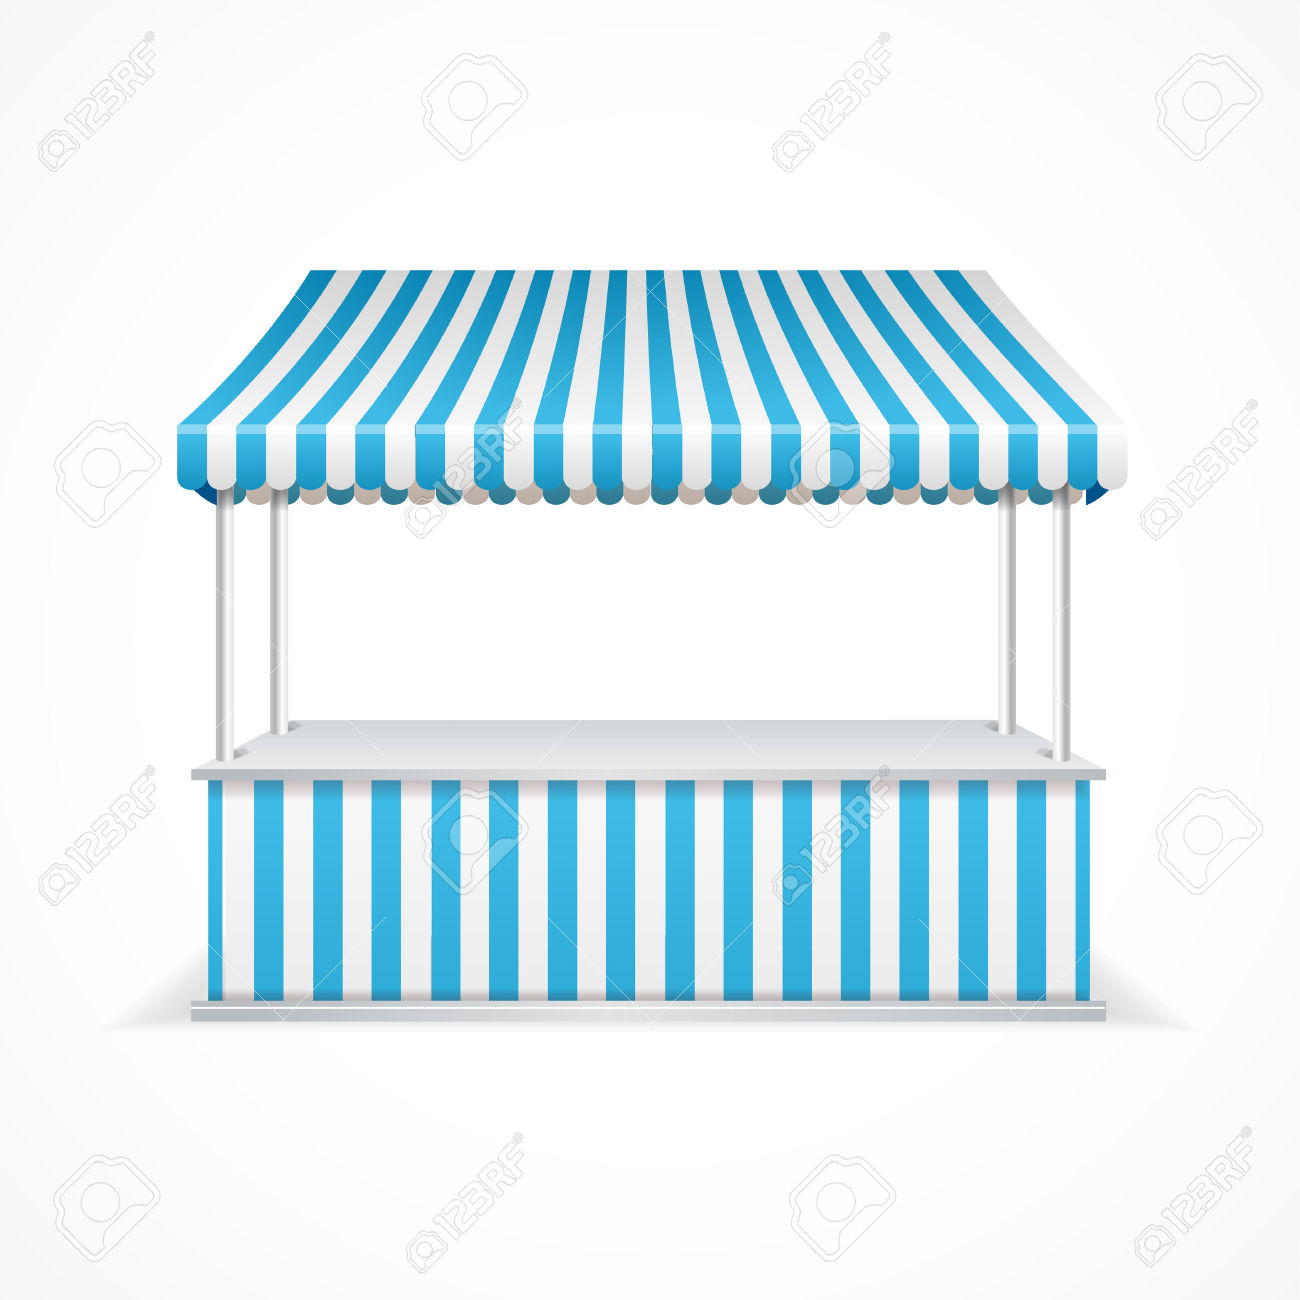 Market Stall With Blue And White Stripes. Vector Illustration.